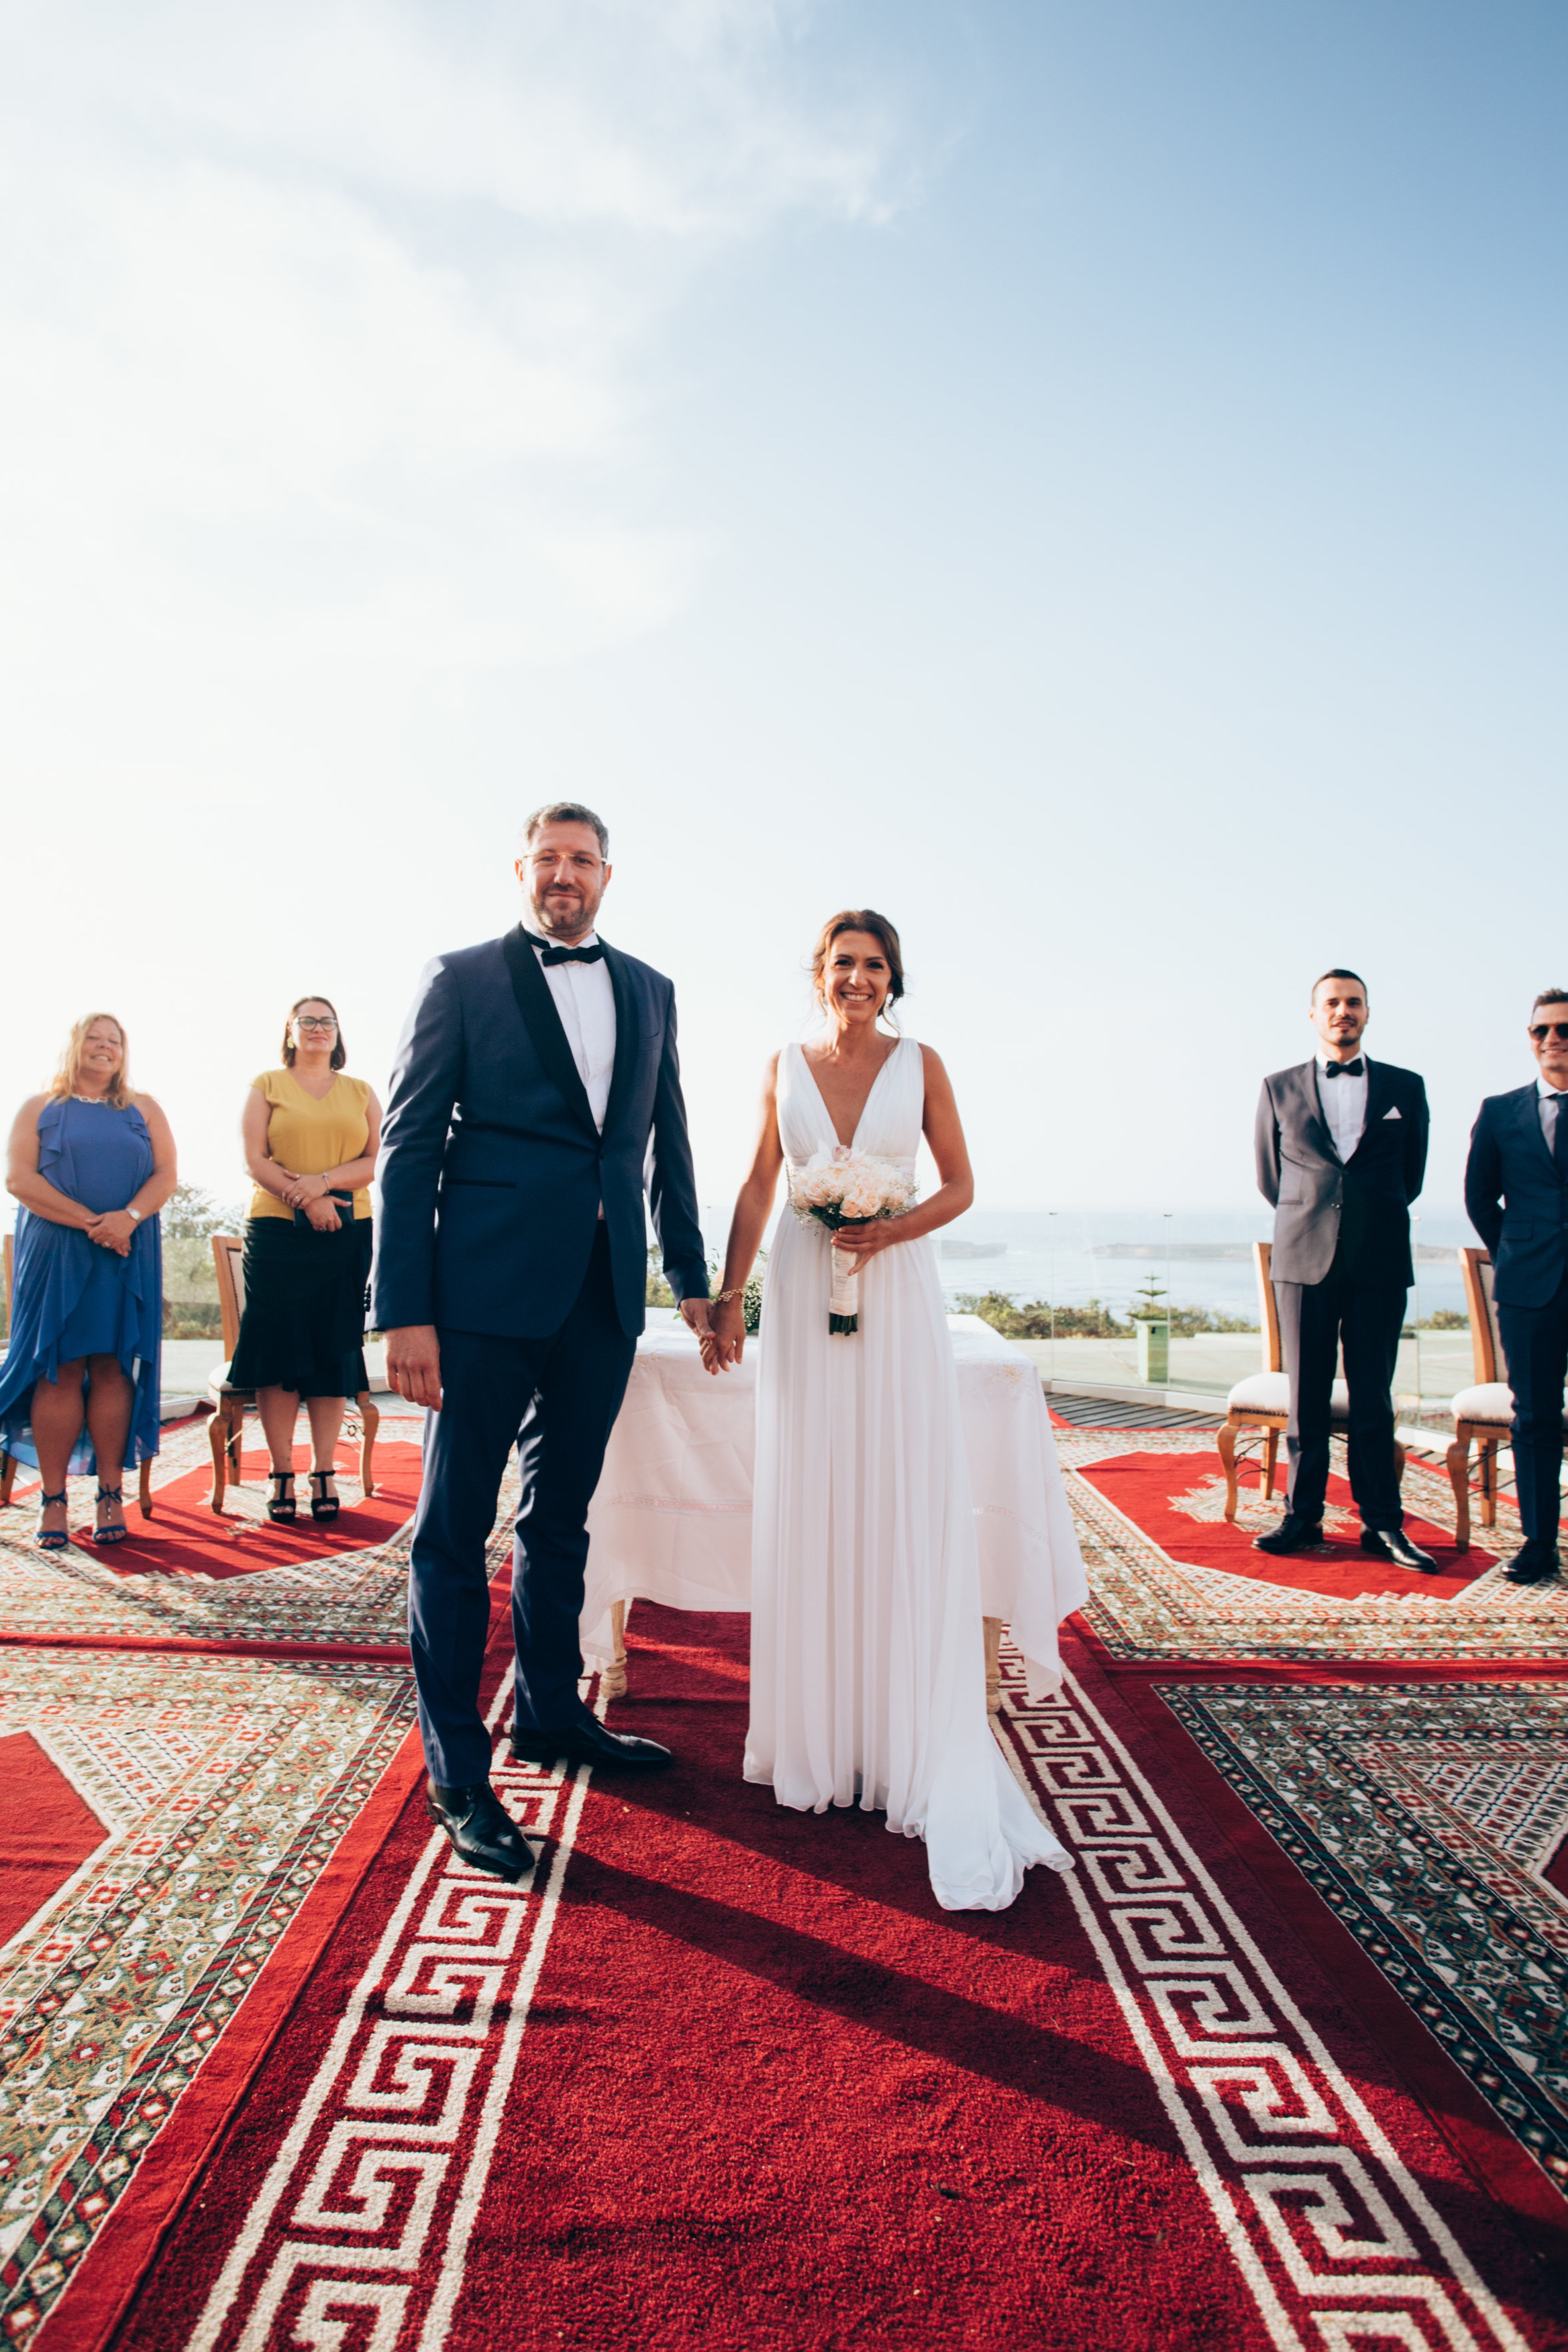 wedding_photographer_leia_vita